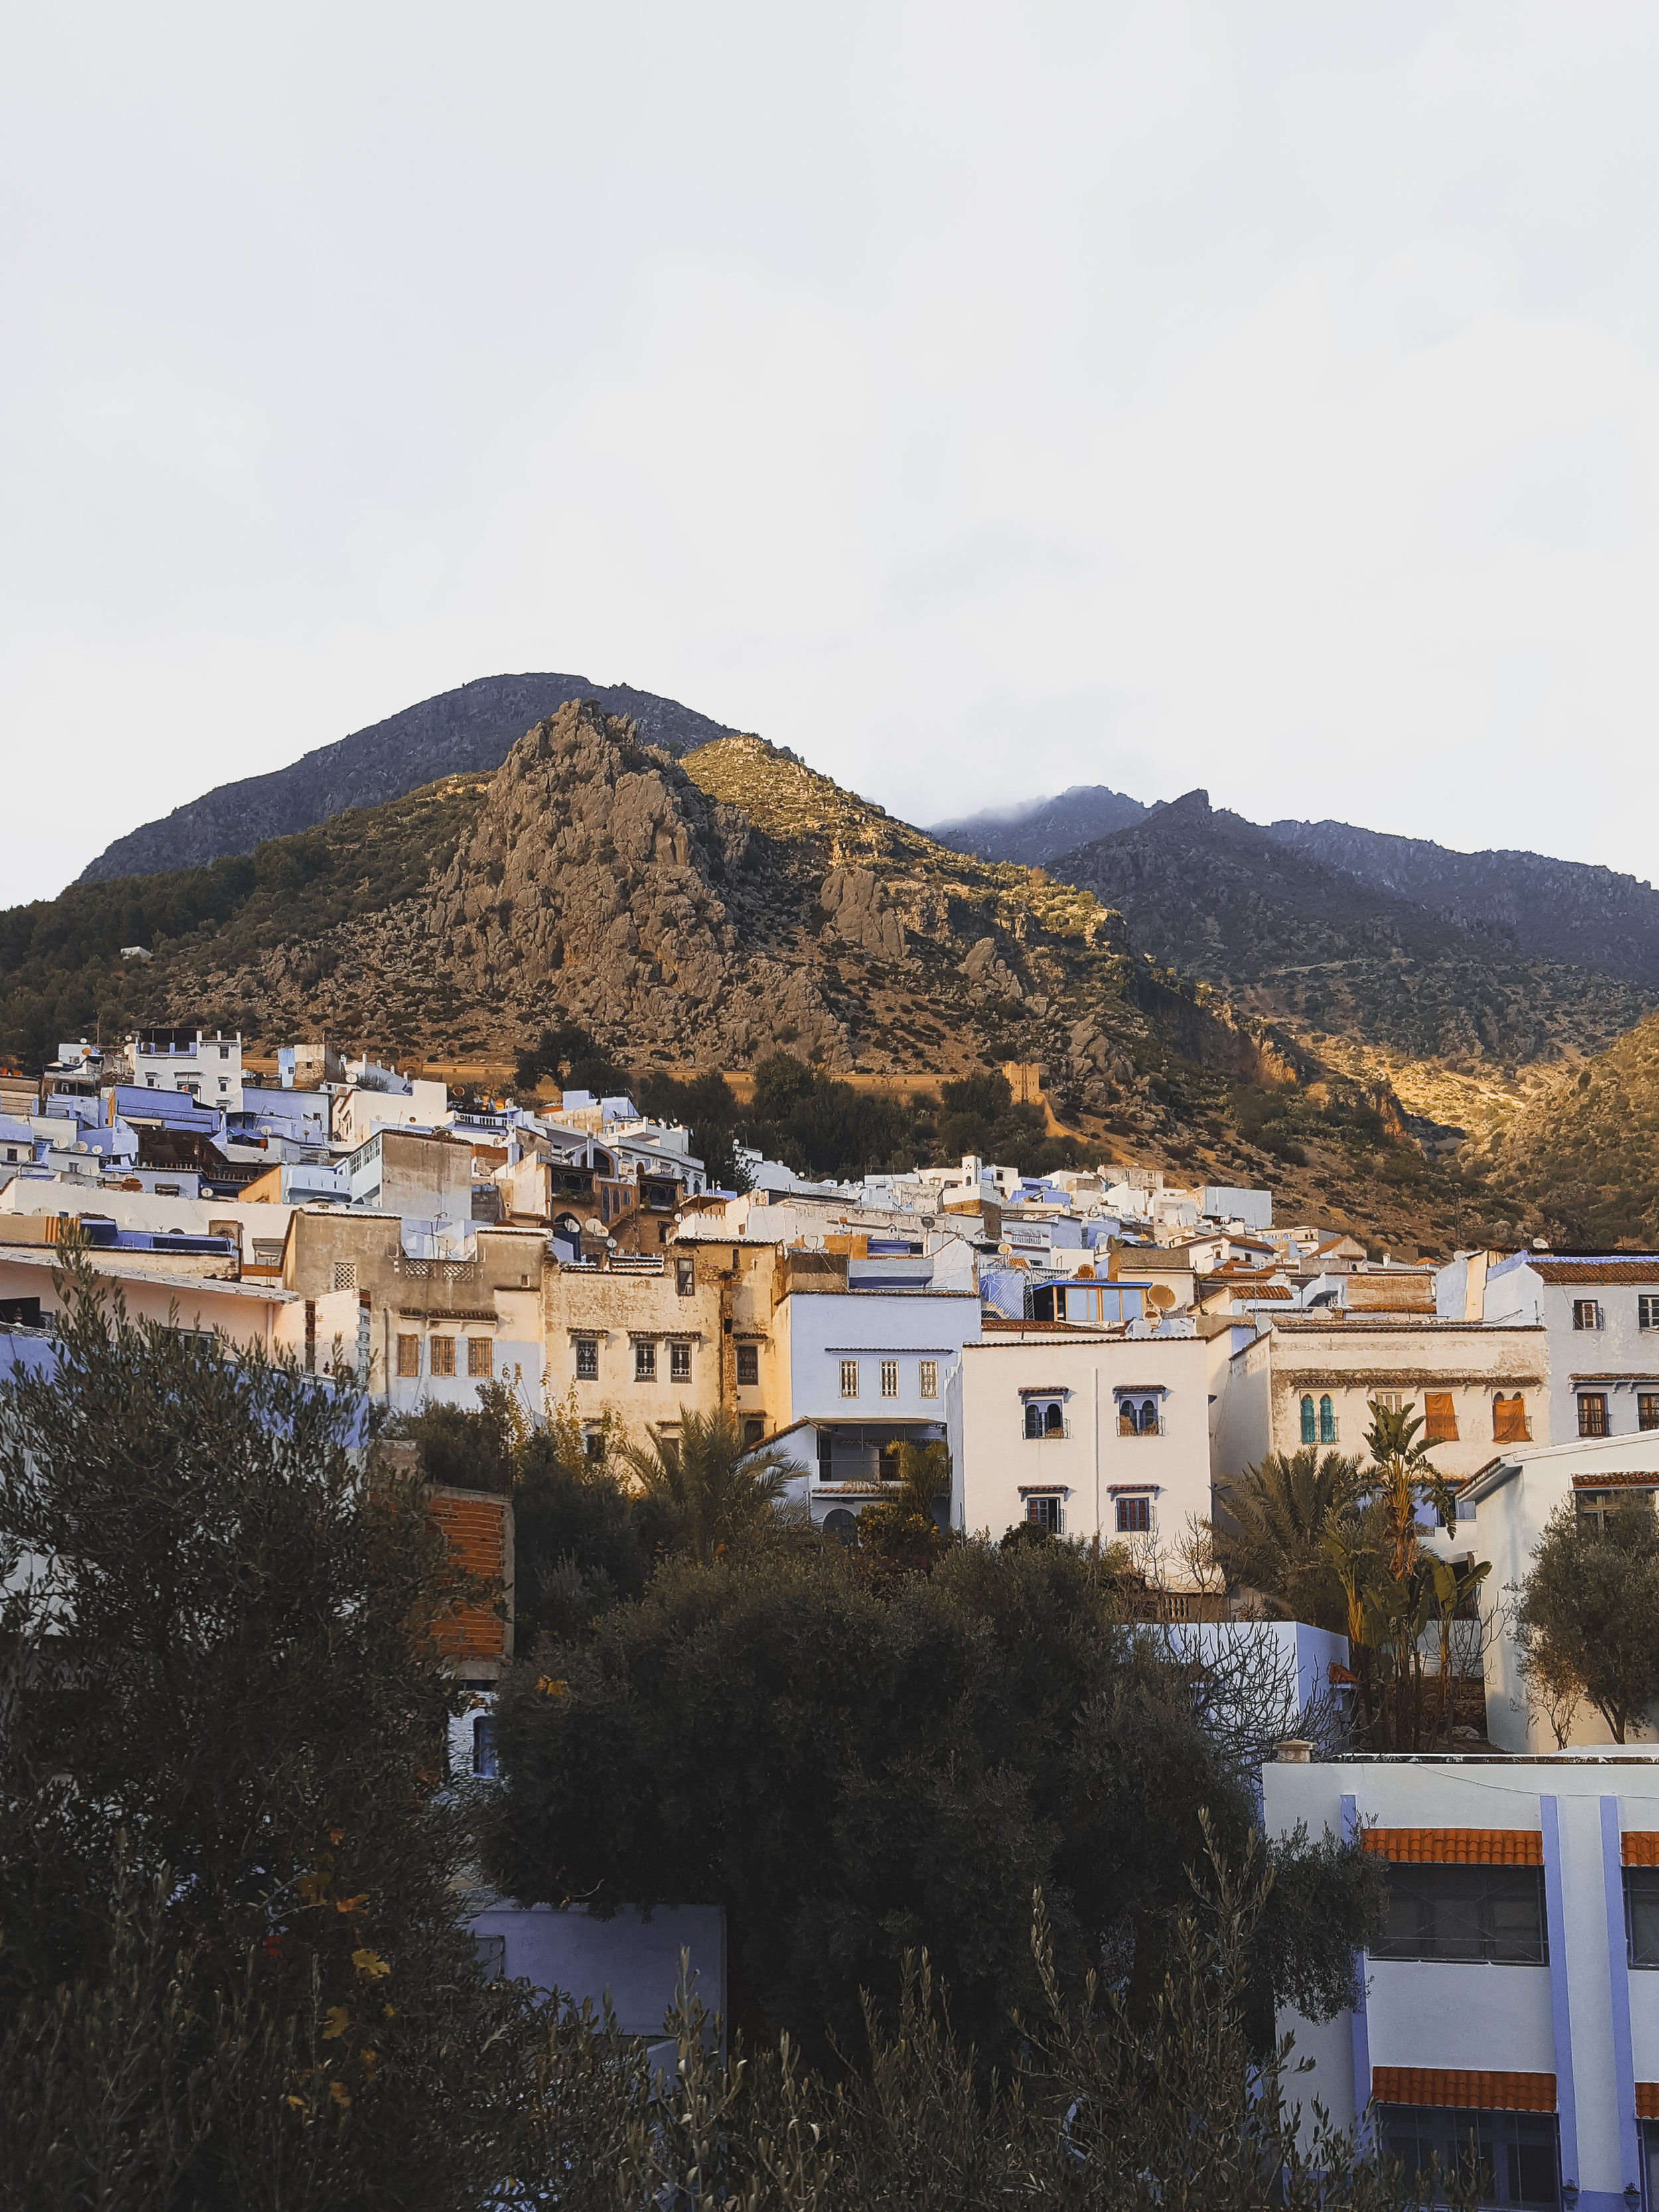 Watching the sun go down in Chefchaouen, Morocco